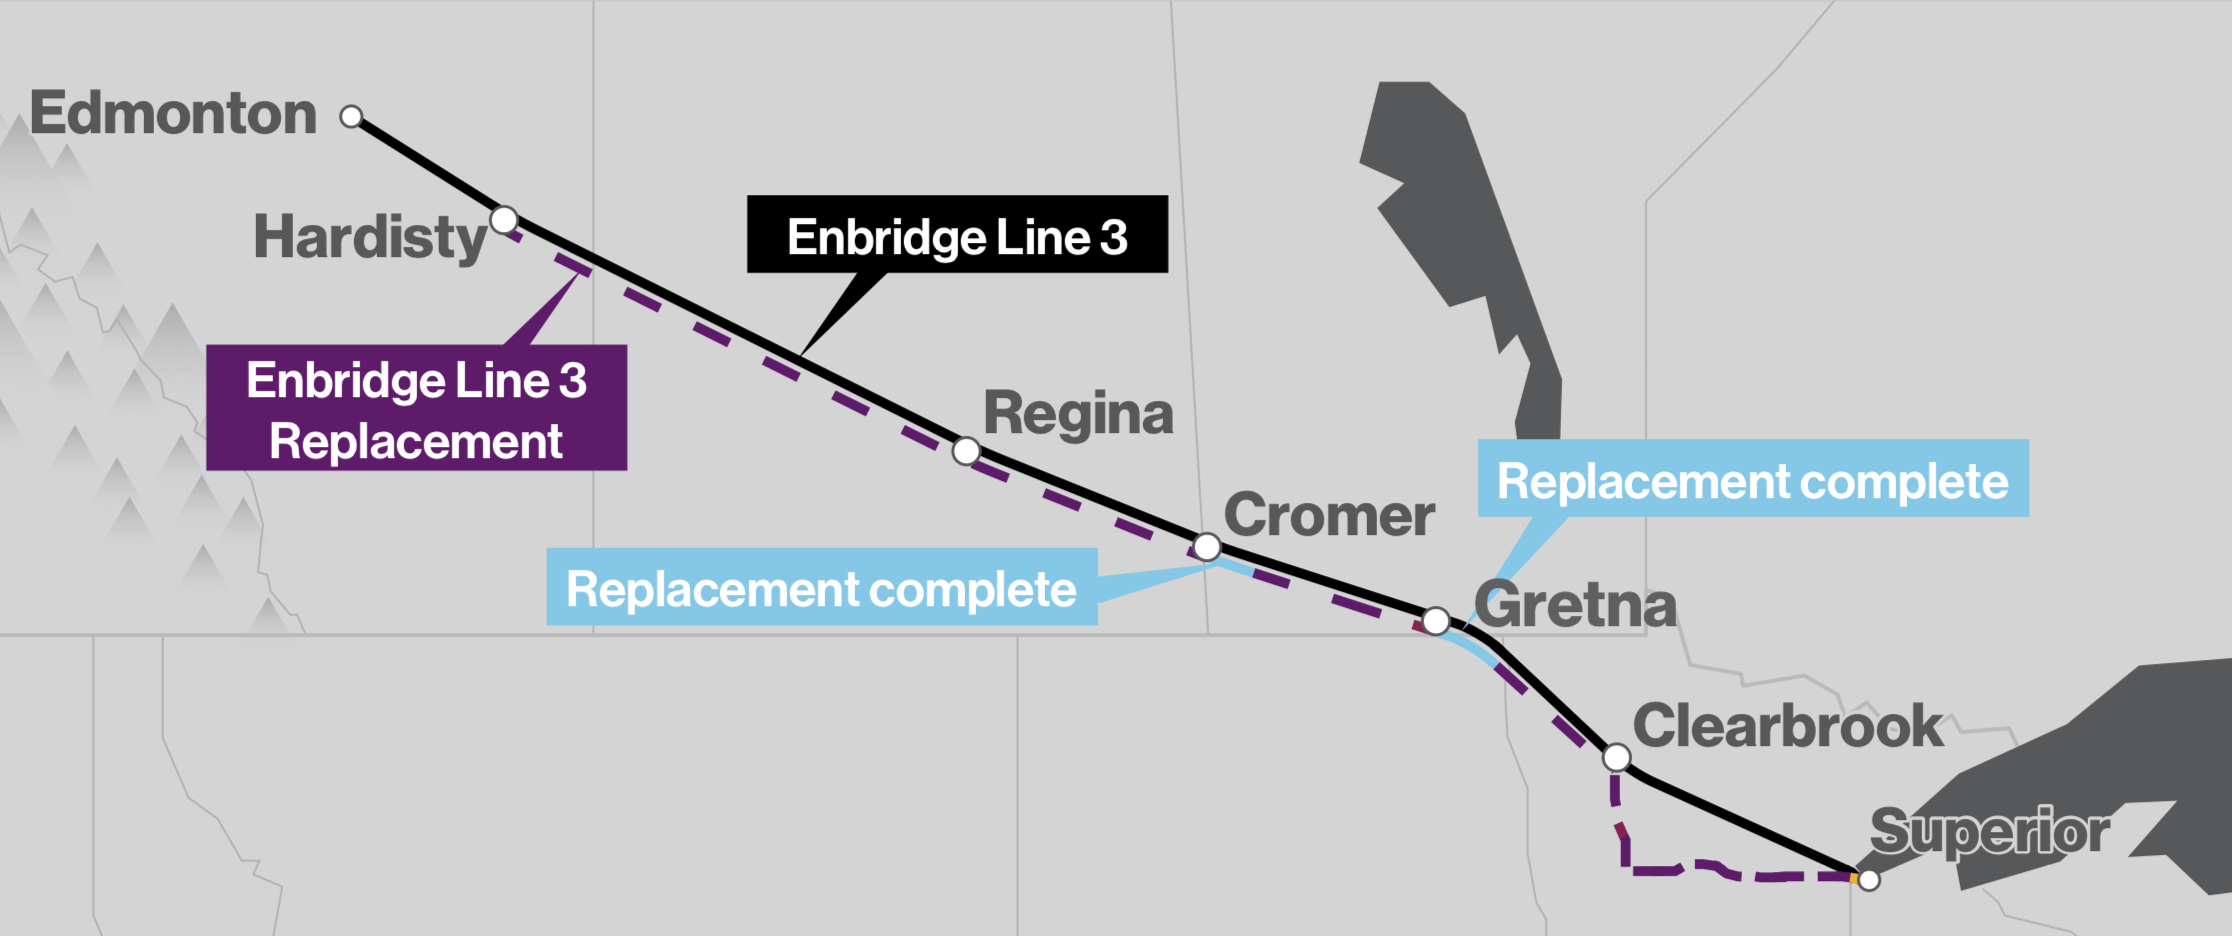 LINE 3 ORIGINAL AND REPLACEMENT ROUTING (COURTESY ENBRIDGE)